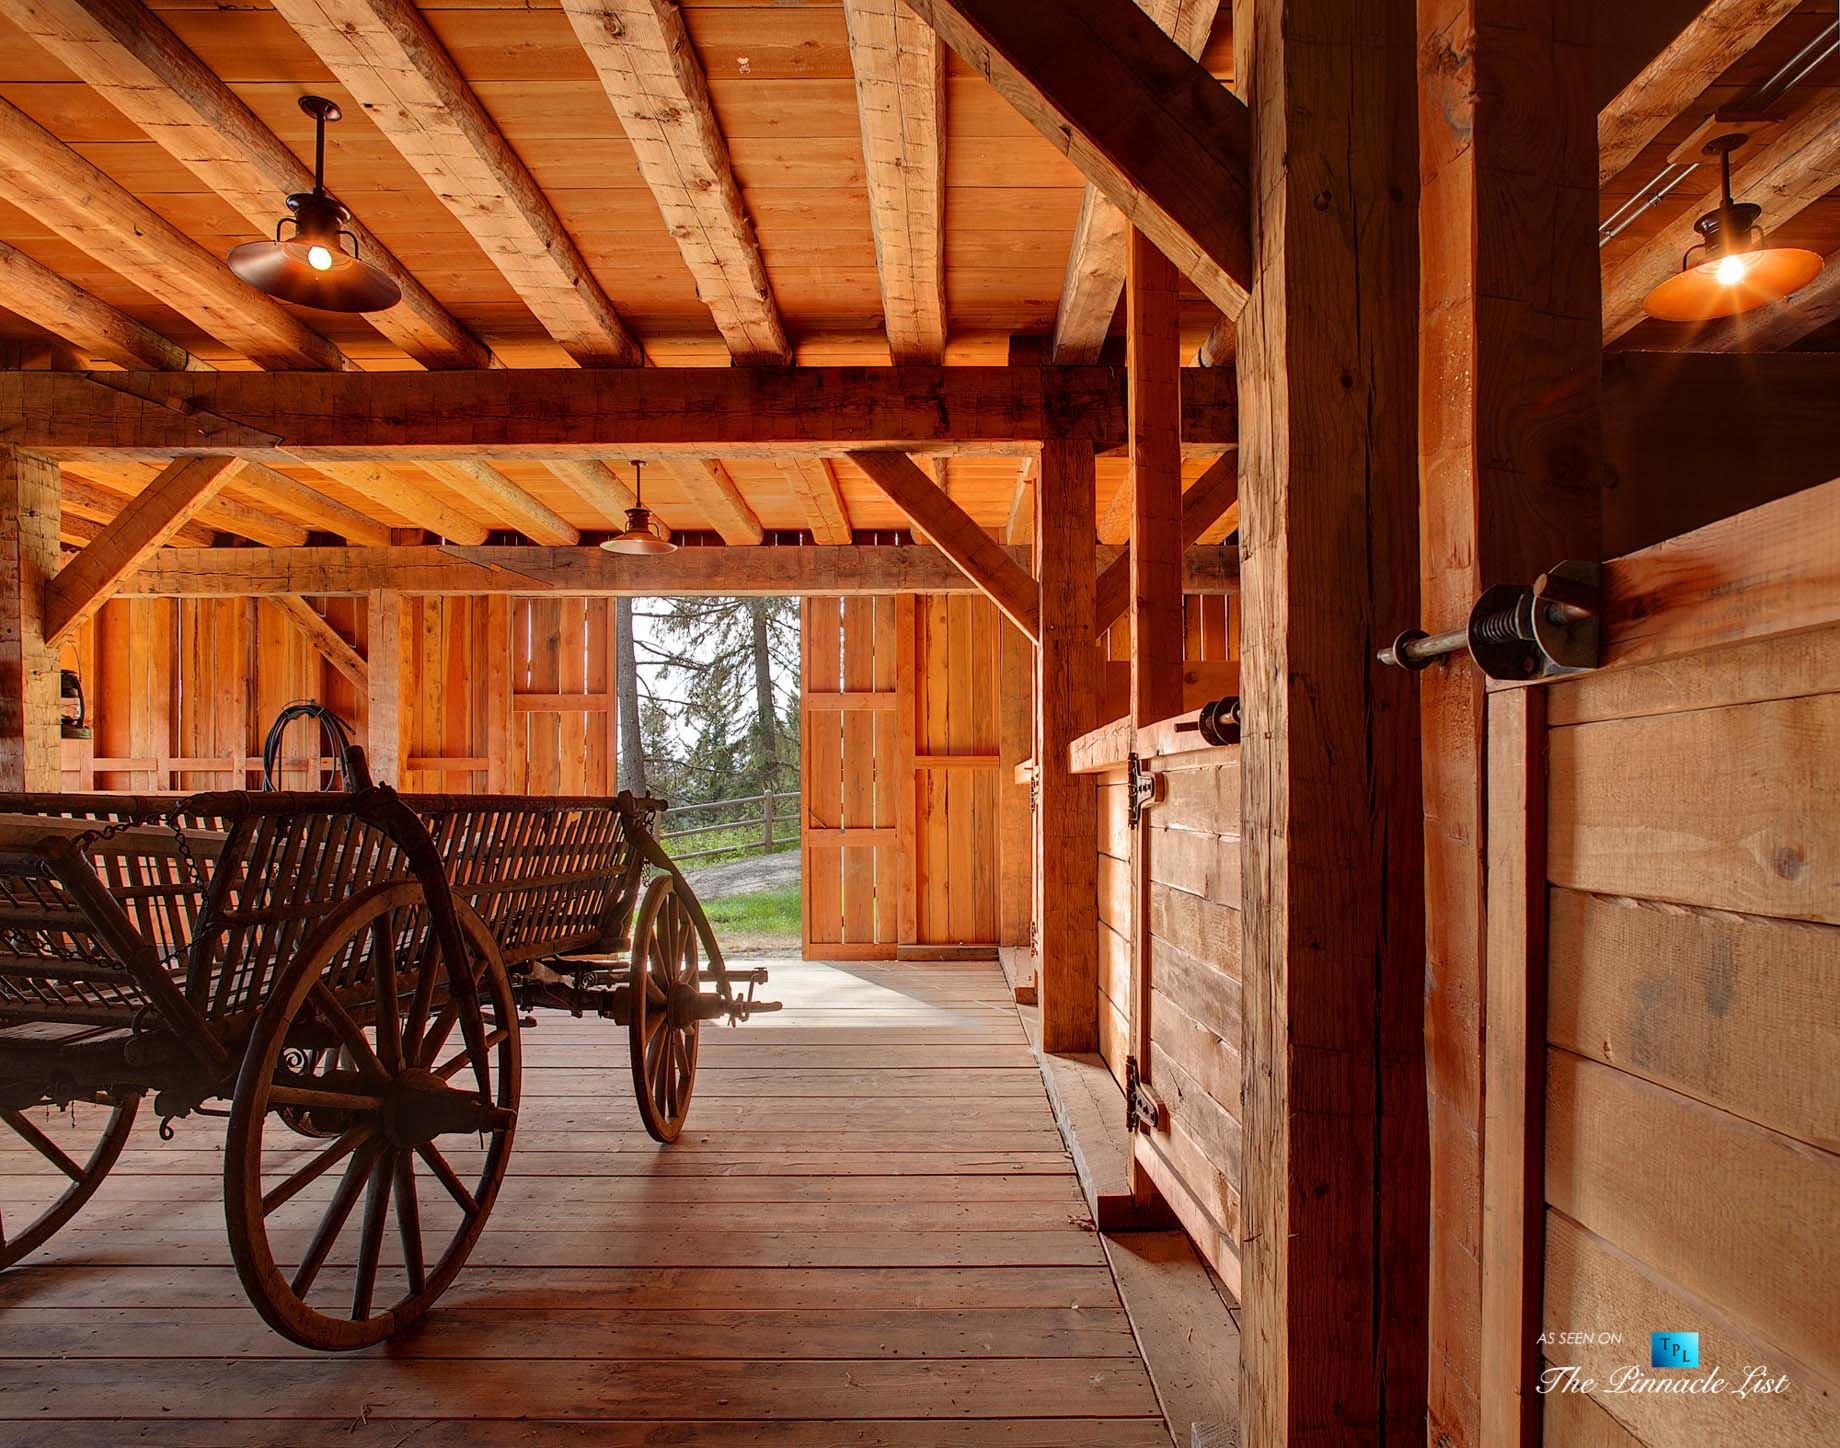 Stable - Thunder Ranch - 7095 Bottle Bay Rd, Sagle, ID, USA